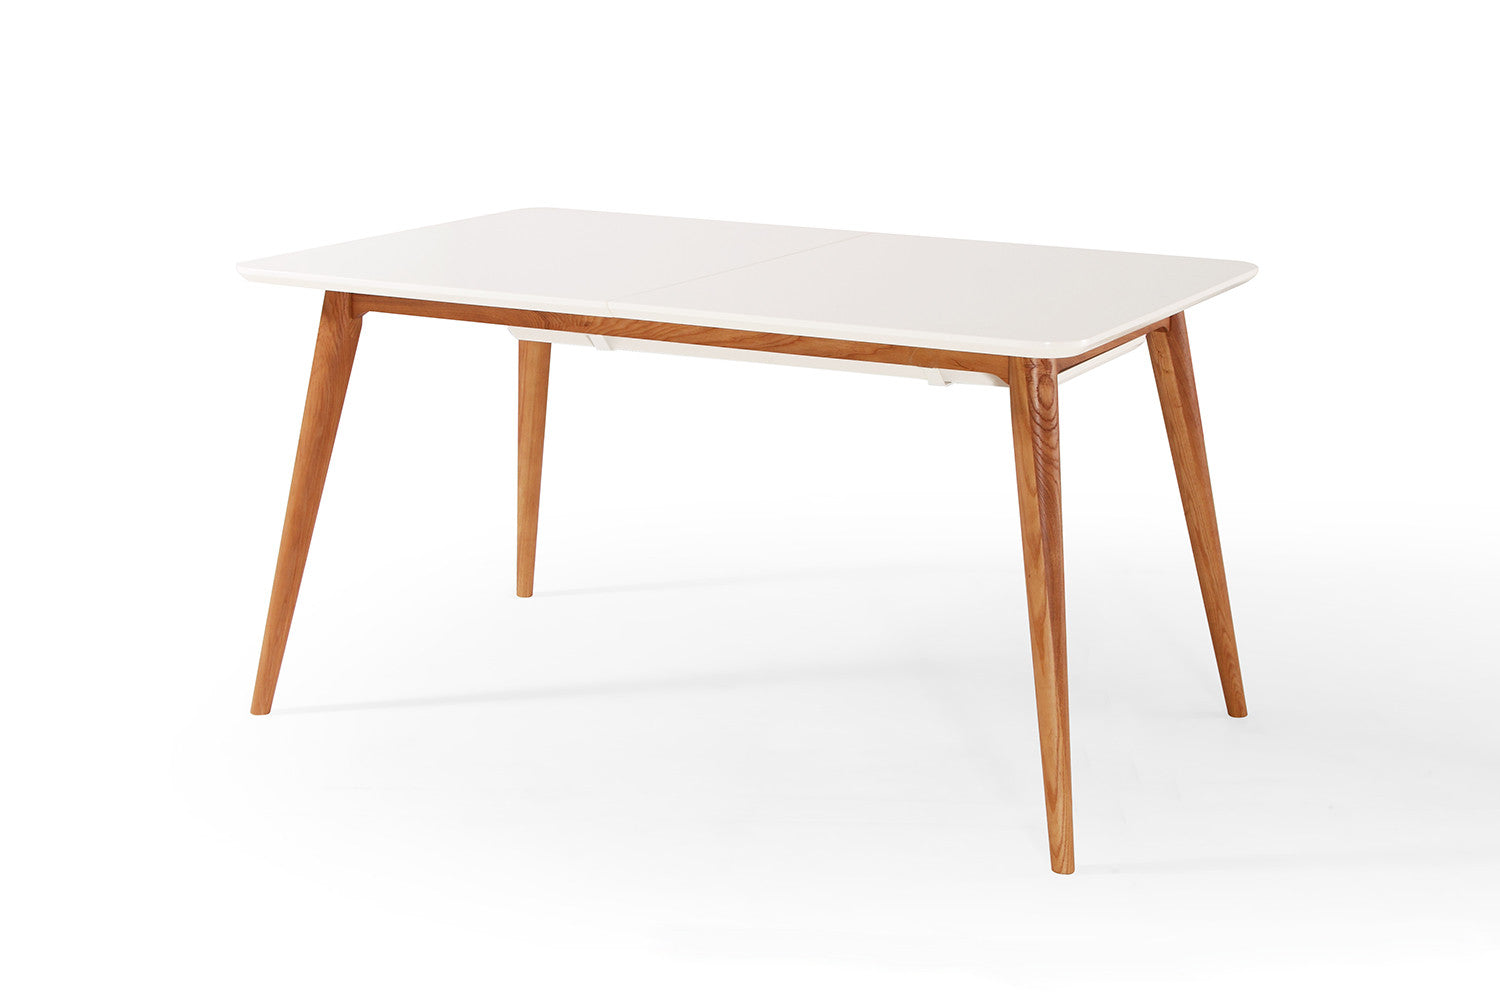 Table de salle manger extensible scandinave wyna dewarens for Table salle a manger extensible design